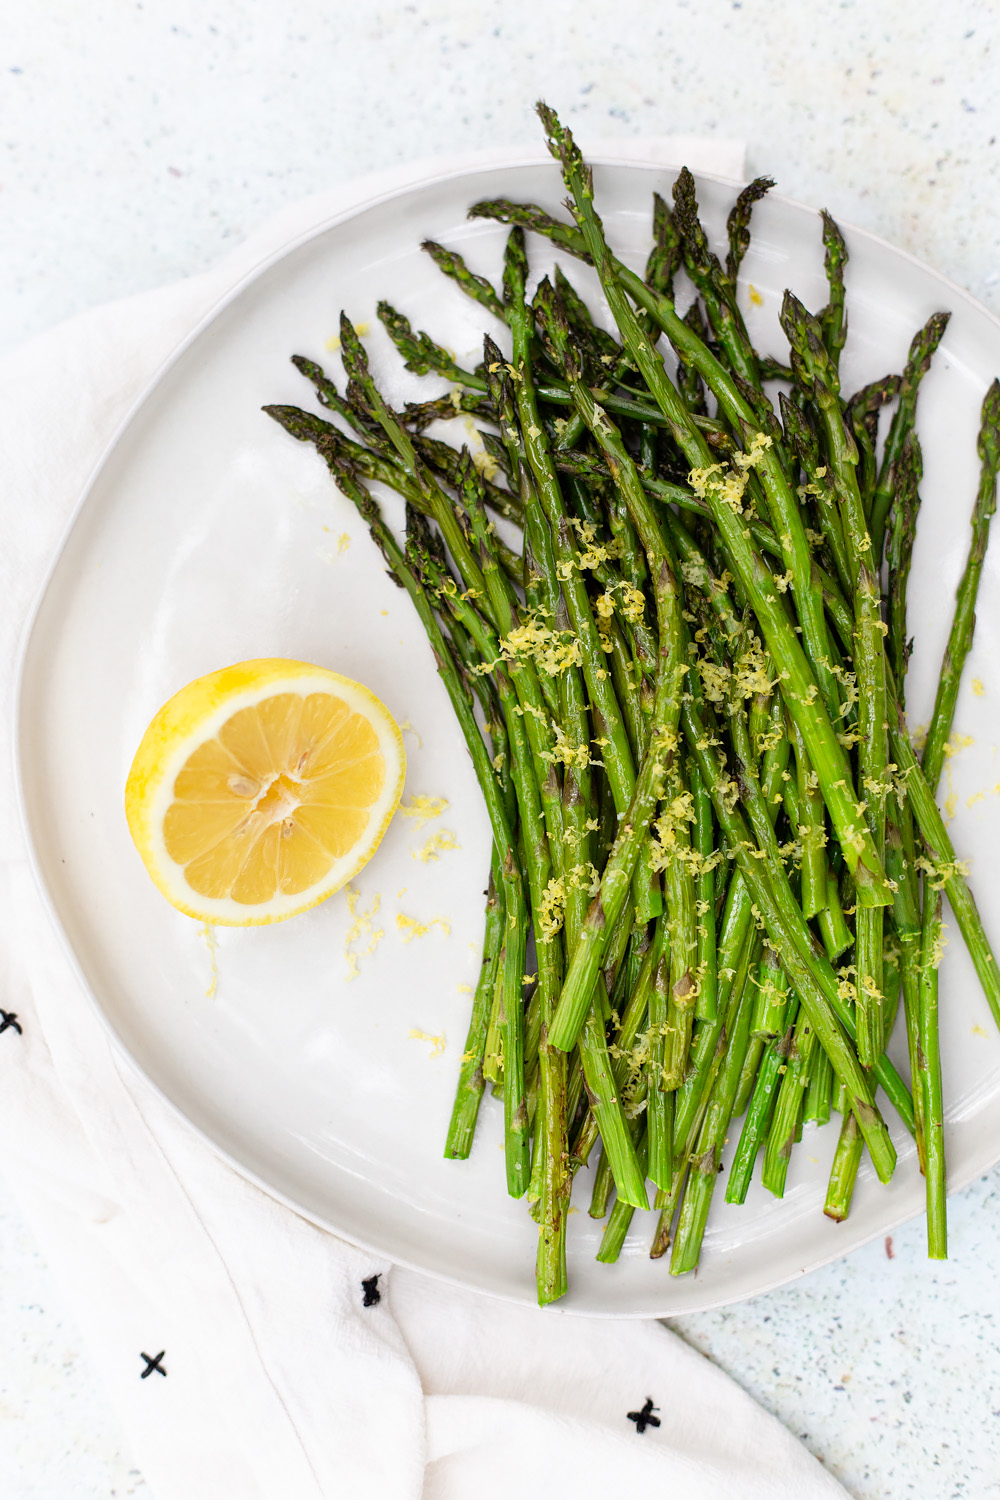 Roasted Asparagus with Lemon Zest